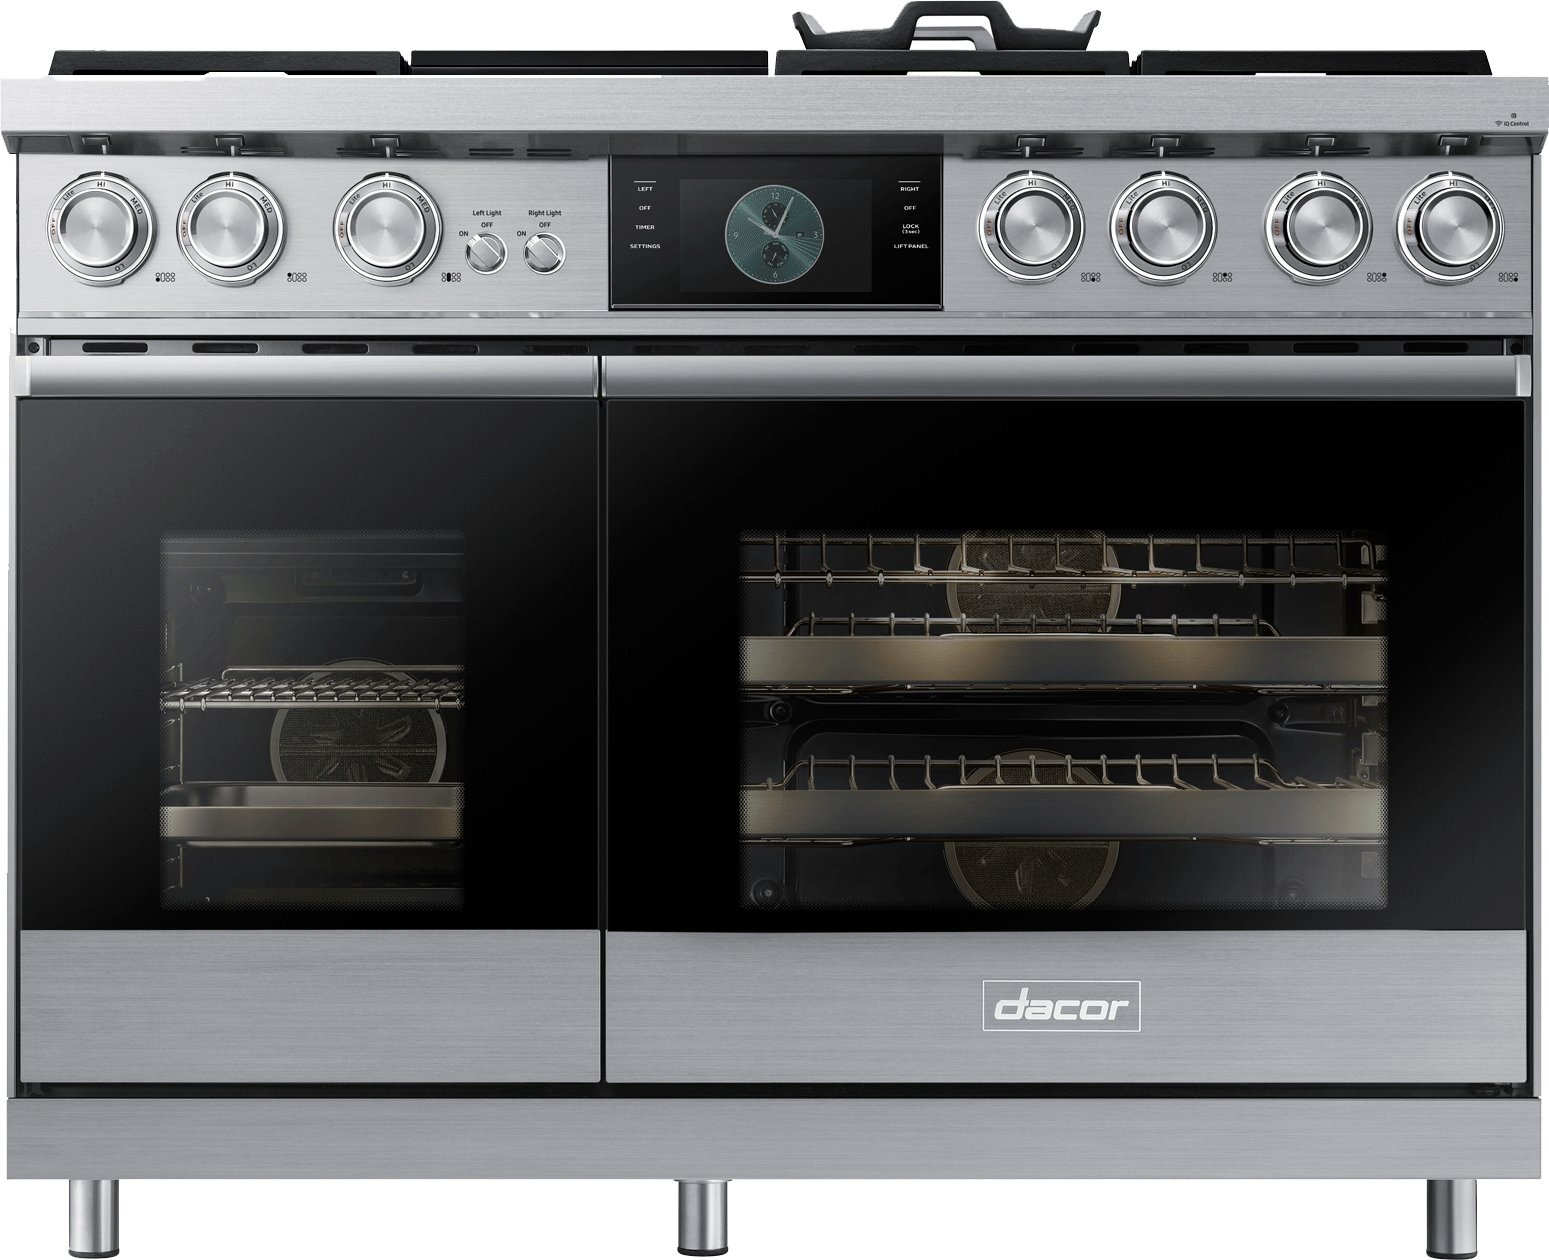 Dacor Dop48m96dls 48 Inch Freestanding Dual Fuel Range With Real Wall Oven Wiring Diagram Image Disclaimer